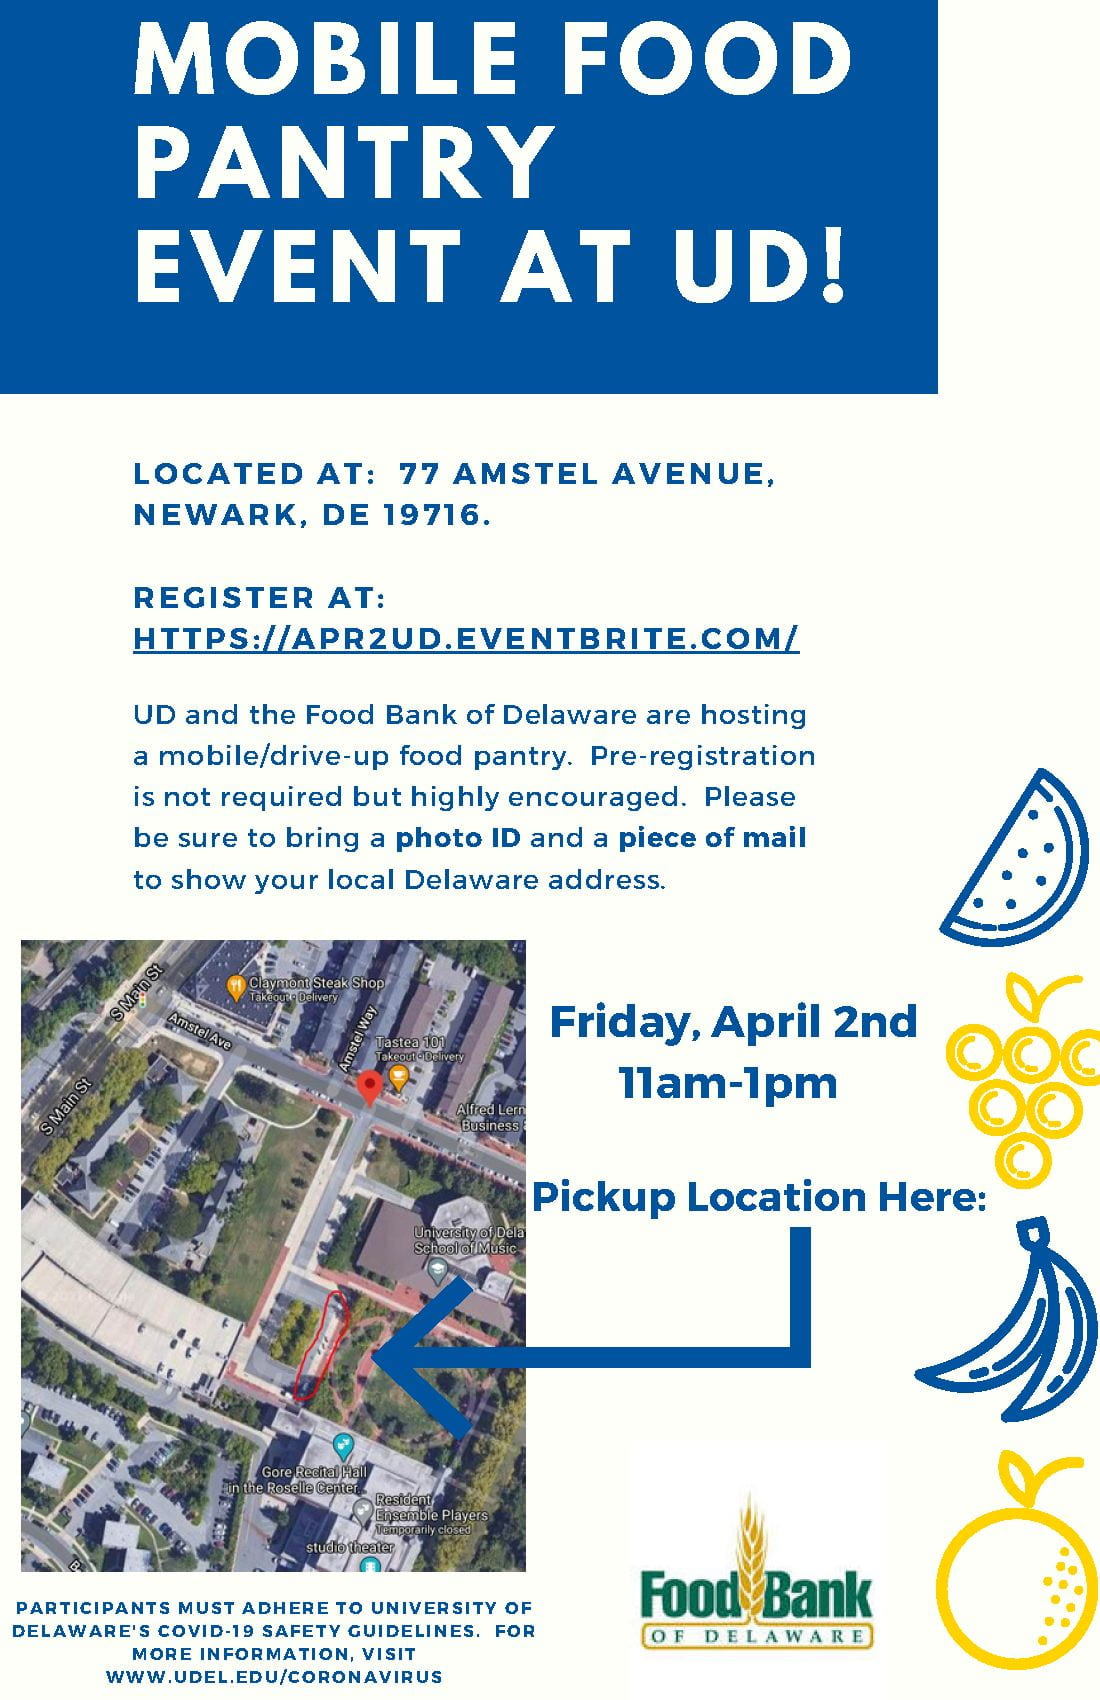 Mobile Food Pantry Event at UD. Friday, April 2nd 11am-1pm. Located at 77 Amstel Avenue, Newark, DE 19716. UD and the Food Bank of Delaware are hostinga mobile/drive-up food pantry. Pre-registrationis not required but highly encouraged. Pleasebe sure to bring a photo ID and a piece of mail to show your local Delaware address.